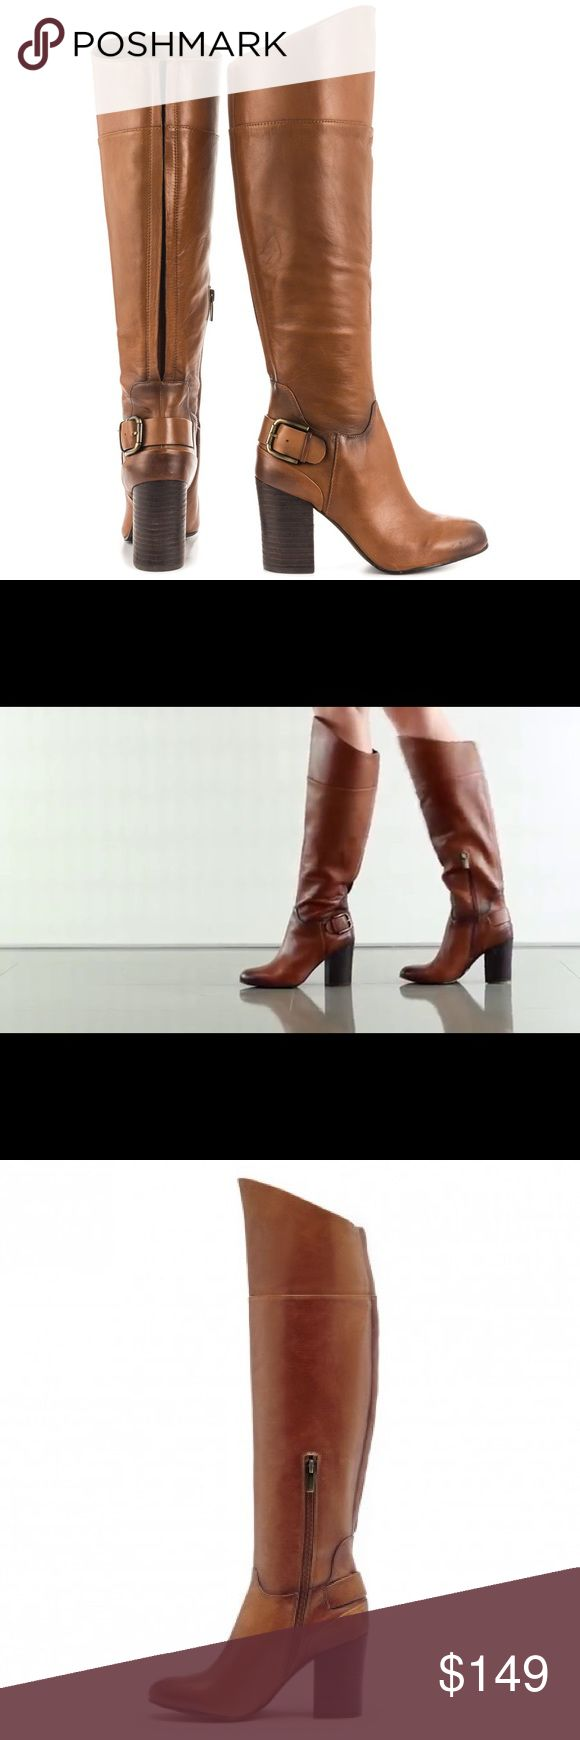 """{Vince Camuto} Sidney leather boots The Vince Camuto Sidney Boots feature a upper with a Round Toe. The Rubber outsole lends lasting traction and wear. SIDNEY-WRMBRNBTR. Material: Measurements: Shaft measures 16"""", Circumference measures 16"""" and 3.5"""" heel. Width: B(M). Color: brown --  I've worn these maybe 2 or 3 times. Natural color variations throughout leather on boots. Great condition!! Vince Camuto Shoes Heeled Boots"""